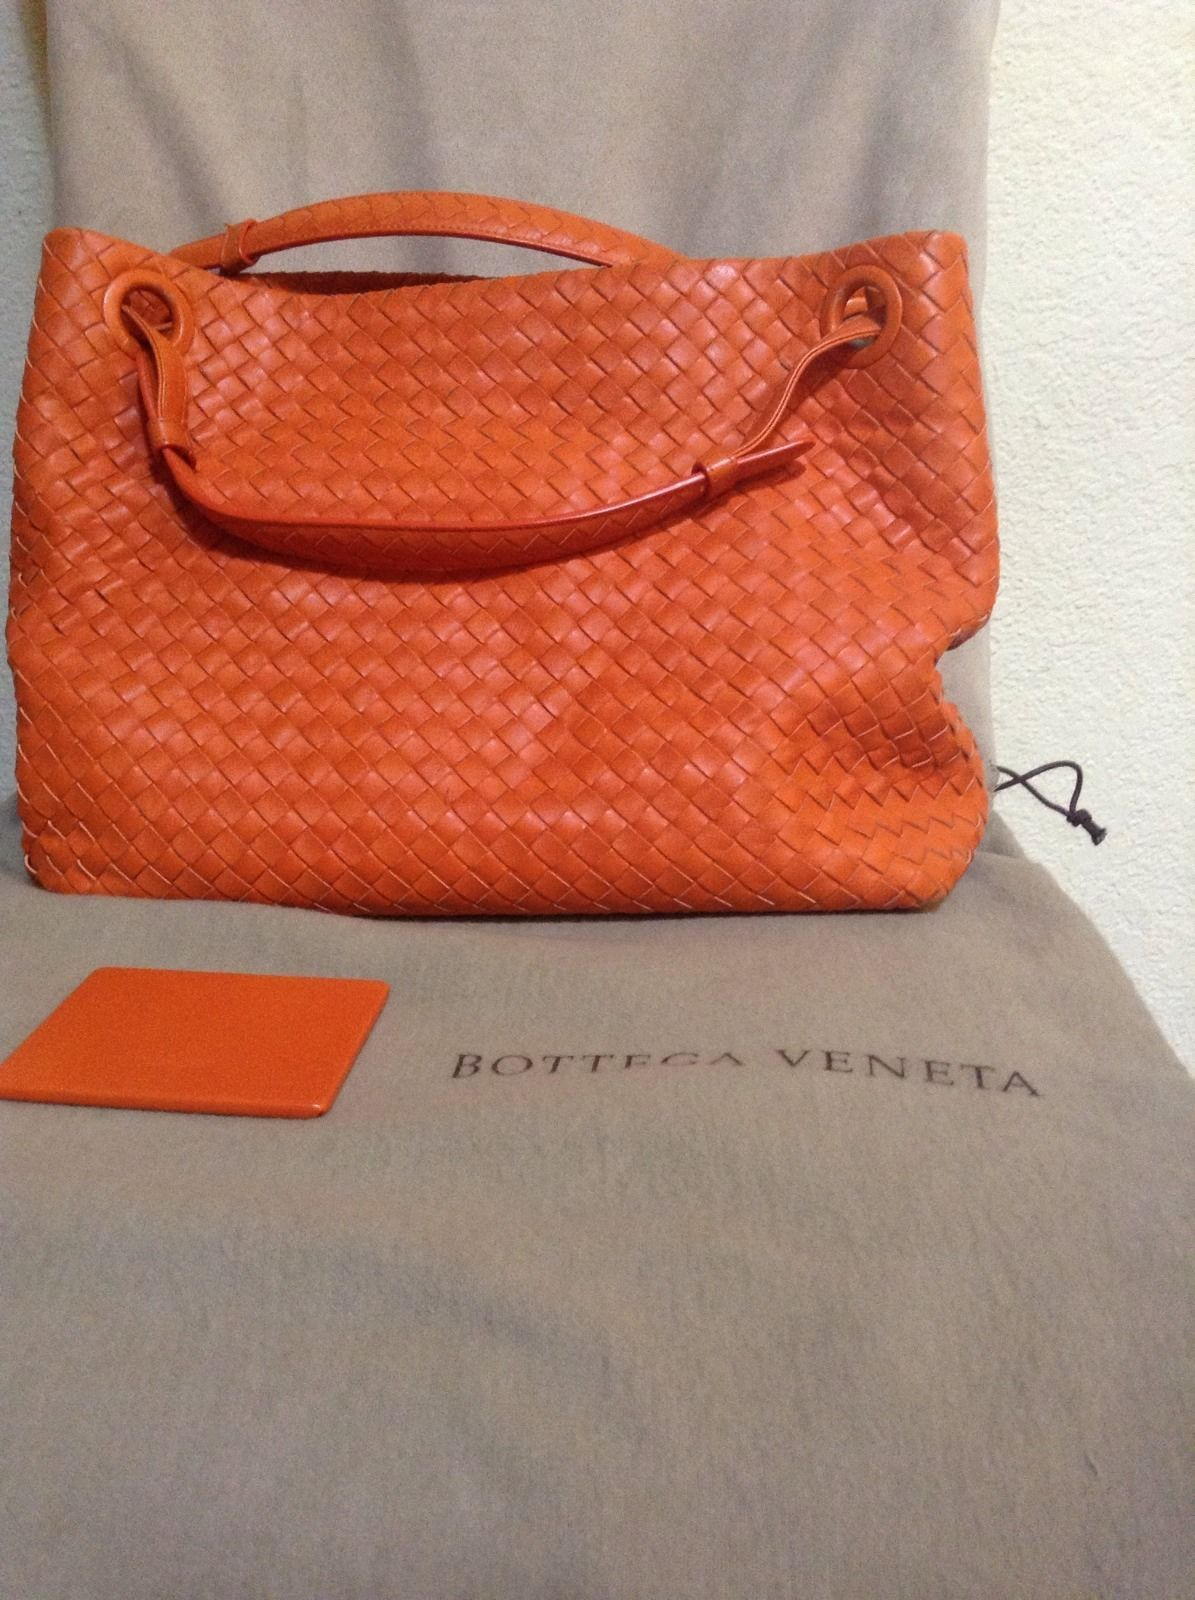 Bottega Veneta Orange Leather Seamless Cuir Sacs À Main Fourre